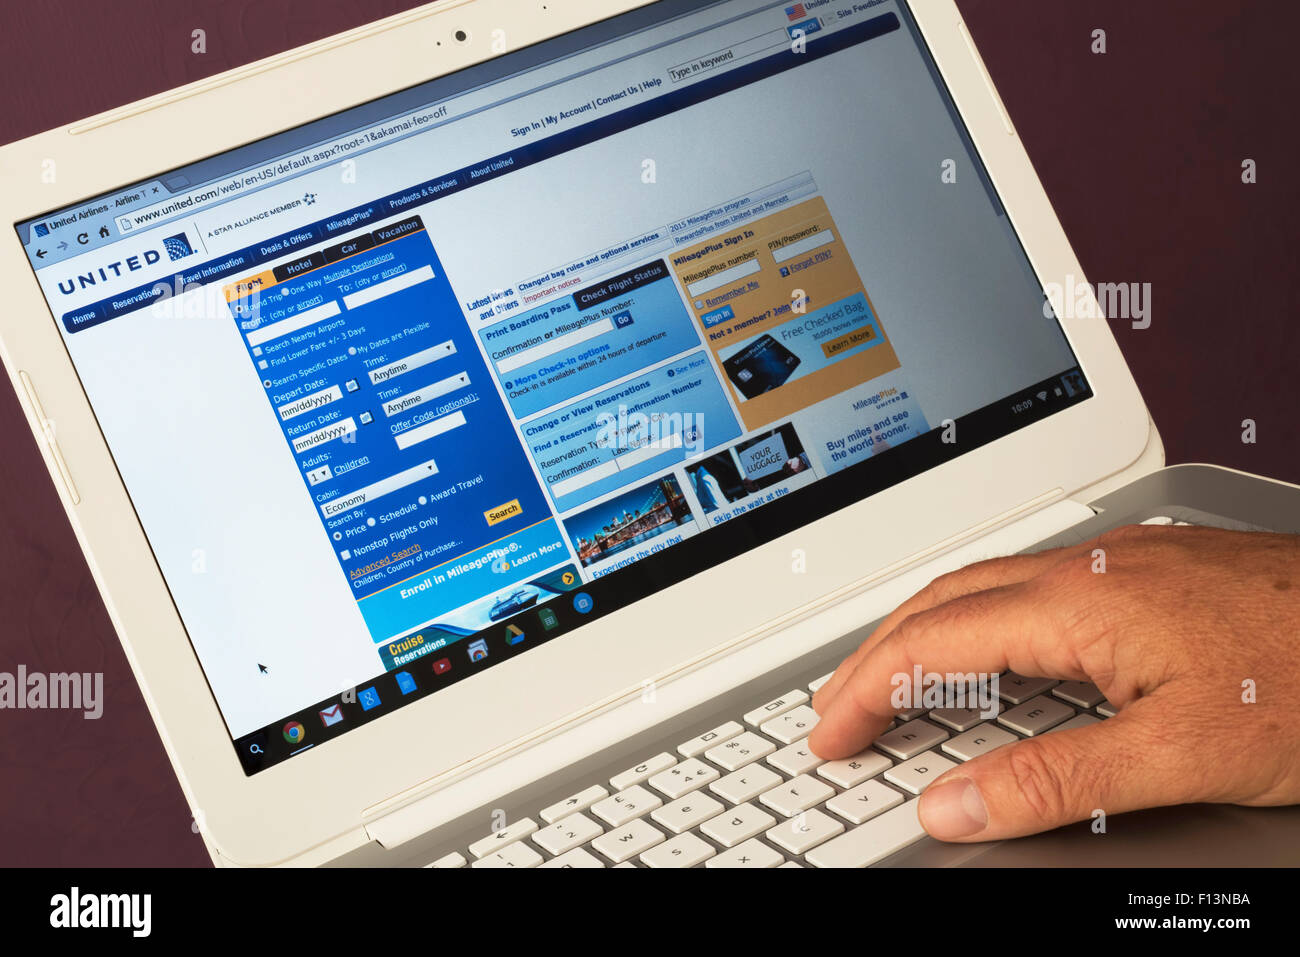 Website belonging to United Airlines being viewed on a laptop computer - Stock Image